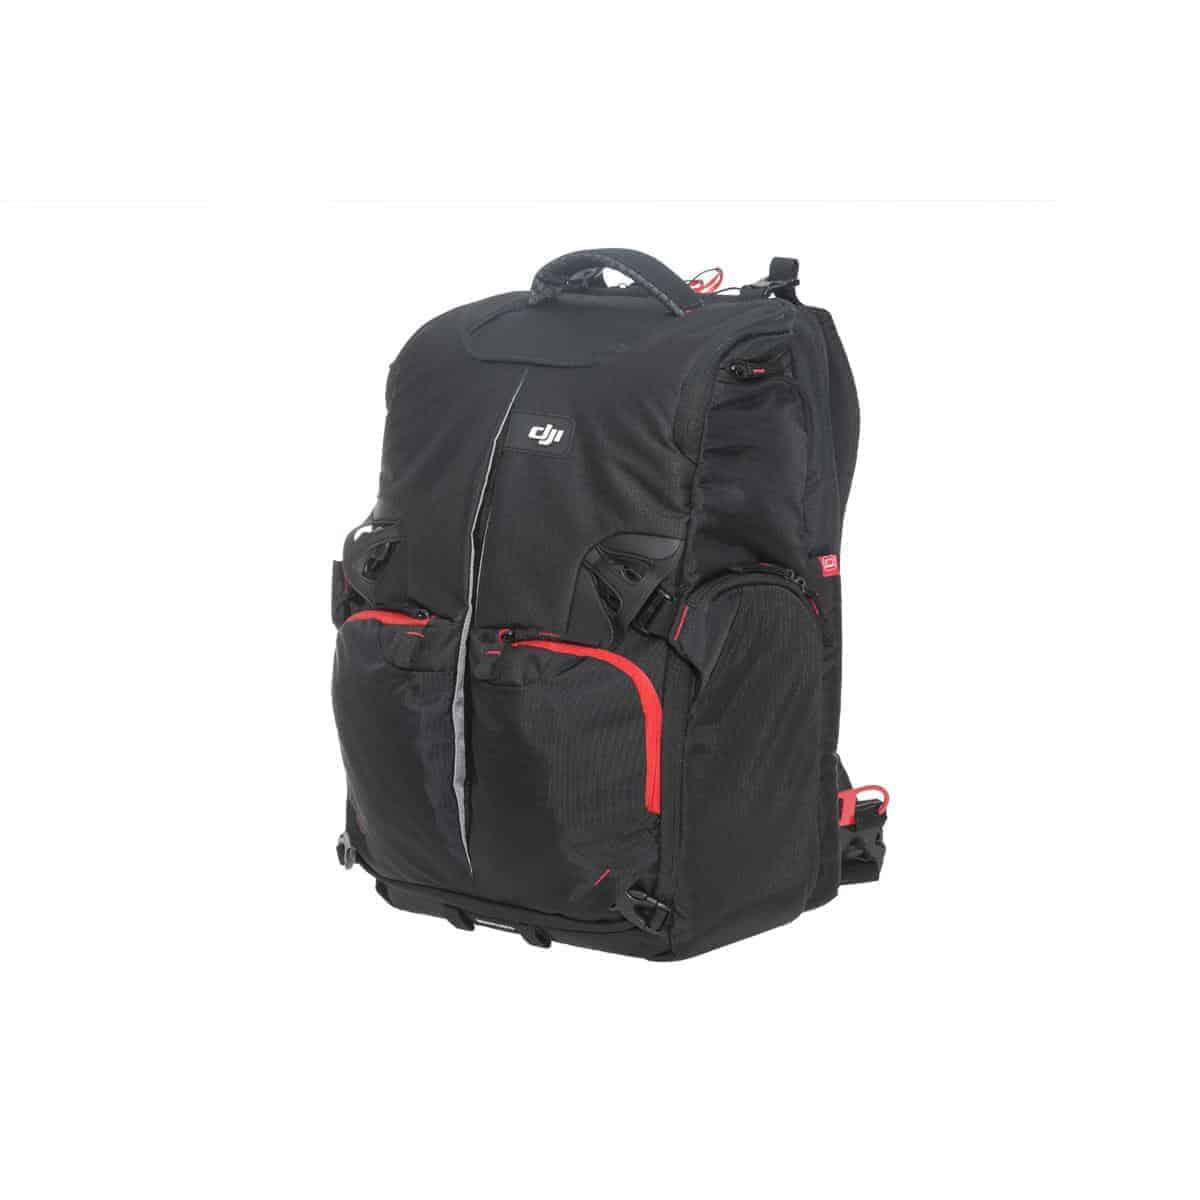 Manfrotto backpack for DJI Phantoms